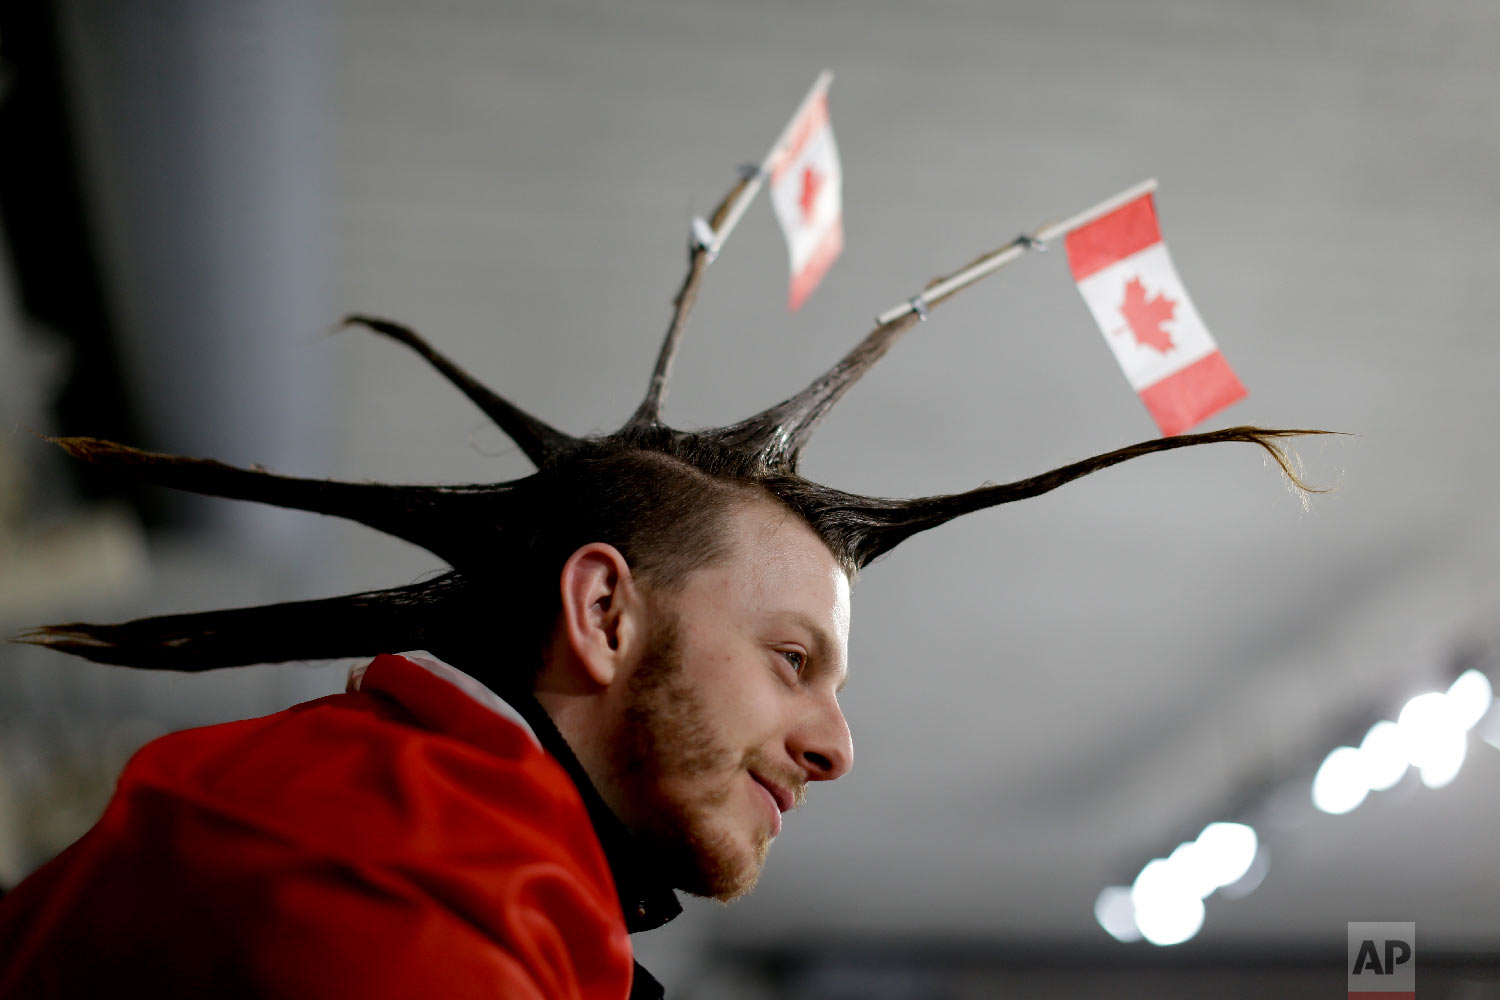 A spectator wearing the Canada flag on his hair watches the mixed doubles semi-final curling match between Russian athletes and Switzerland at the 2018 Winter Olympics in Gangneung, South Korea, Monday, Feb. 12, 2018. (AP Photo/Natacha Pisarenko)